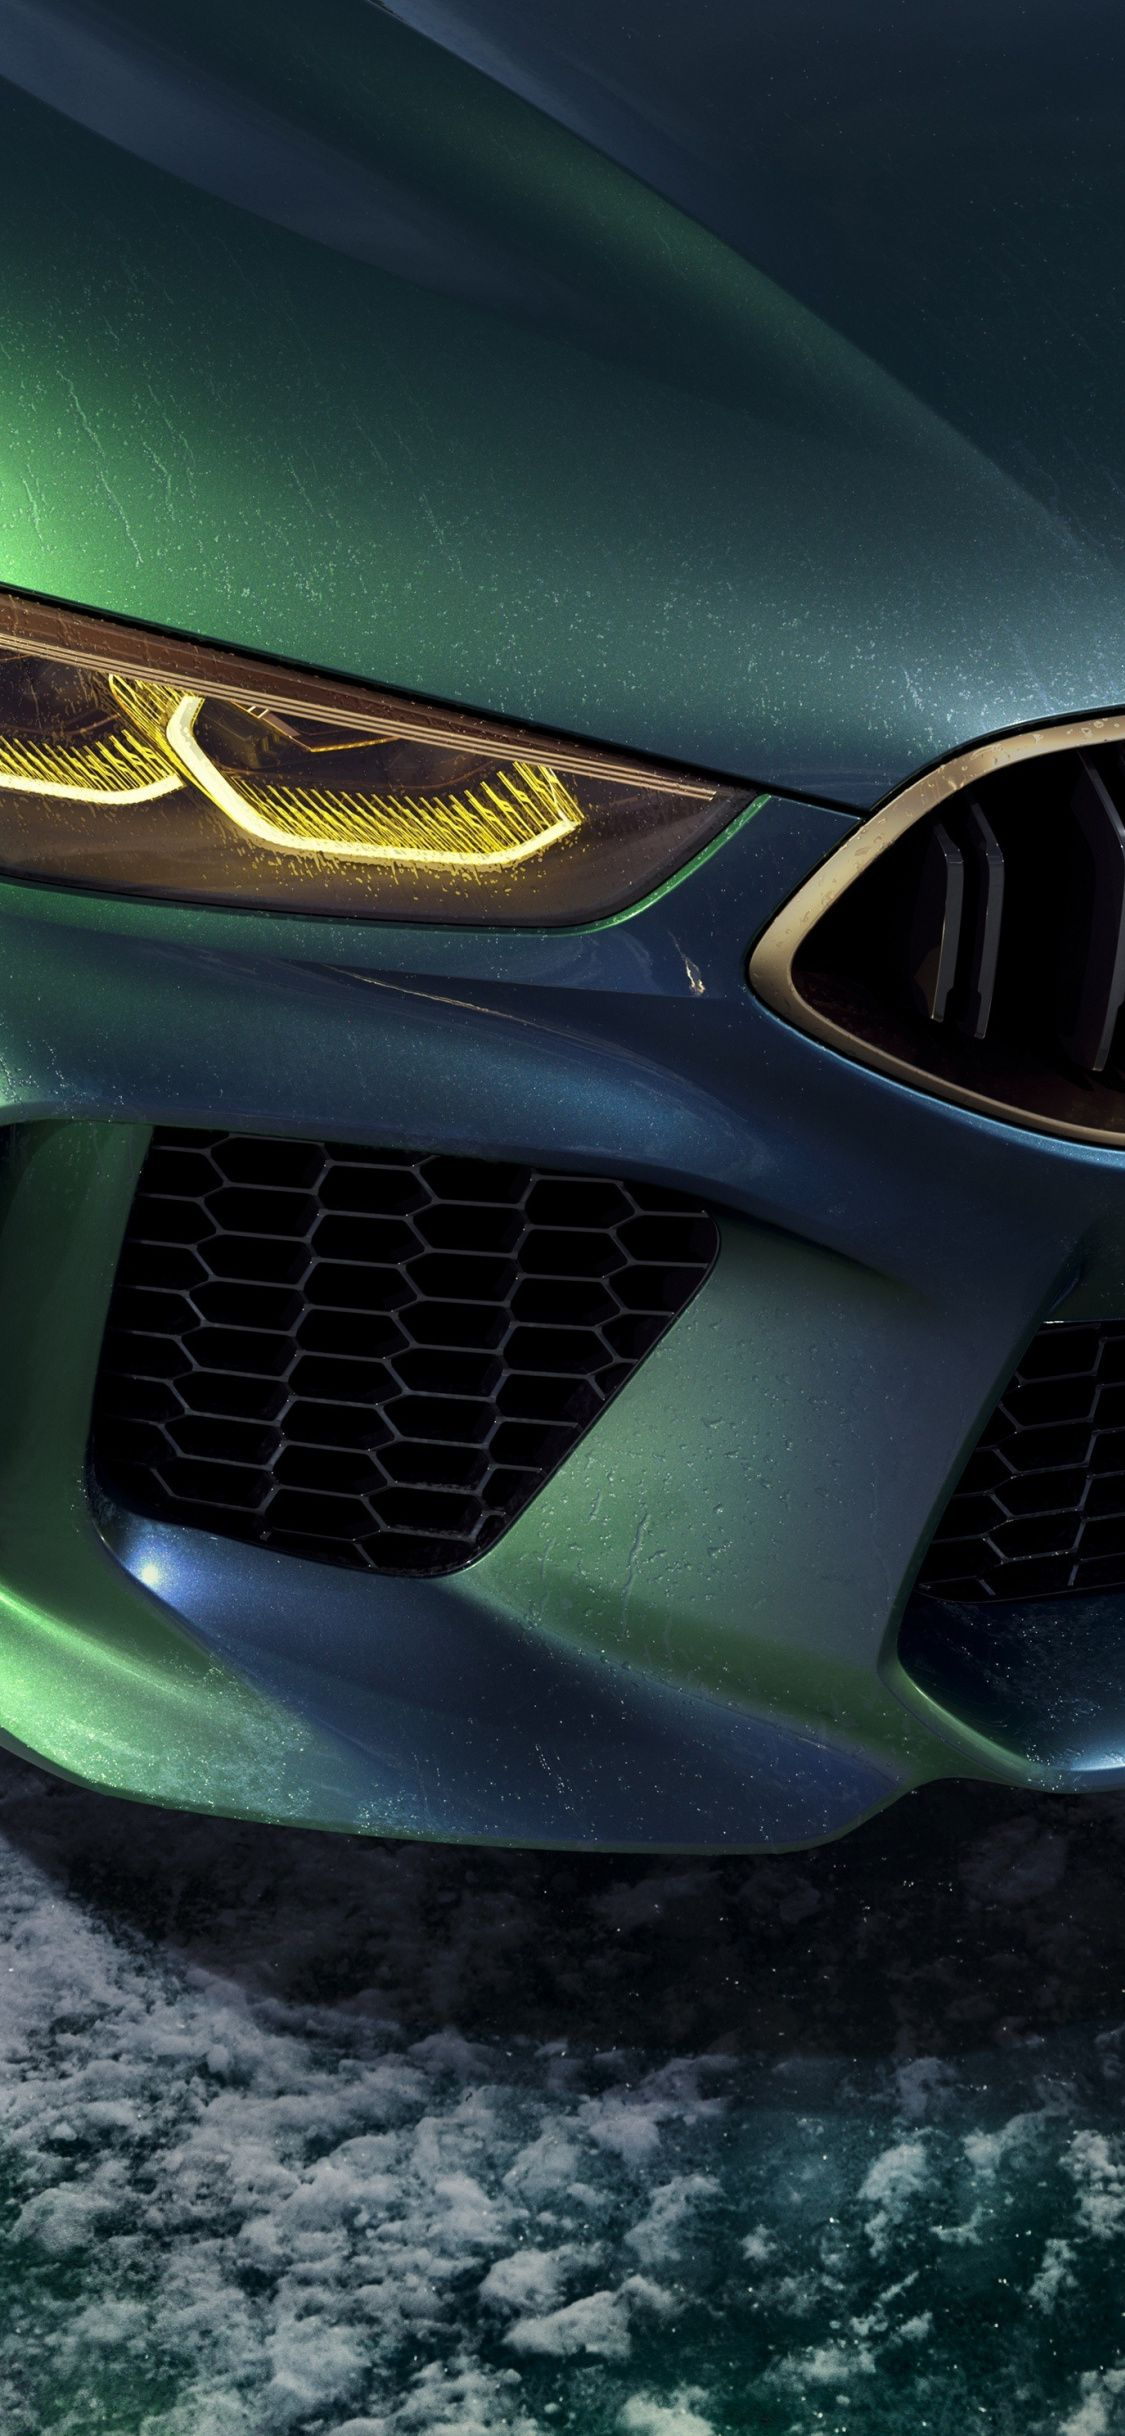 Download 1152x864 Wallpaper Bmw Concept M8 Gran Coupe Headlights